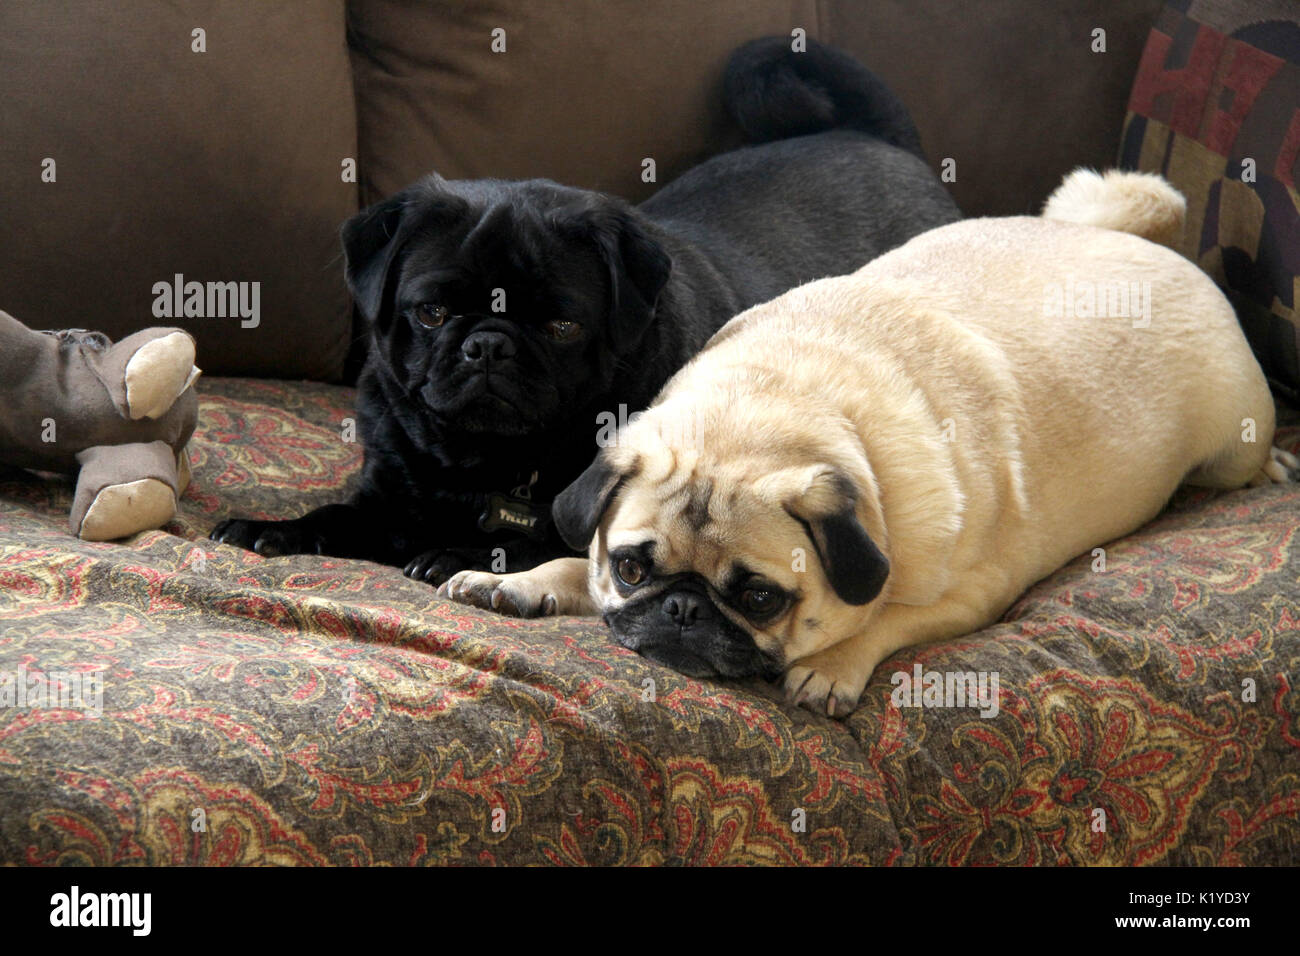 Two pugs on the couch - Stock Image